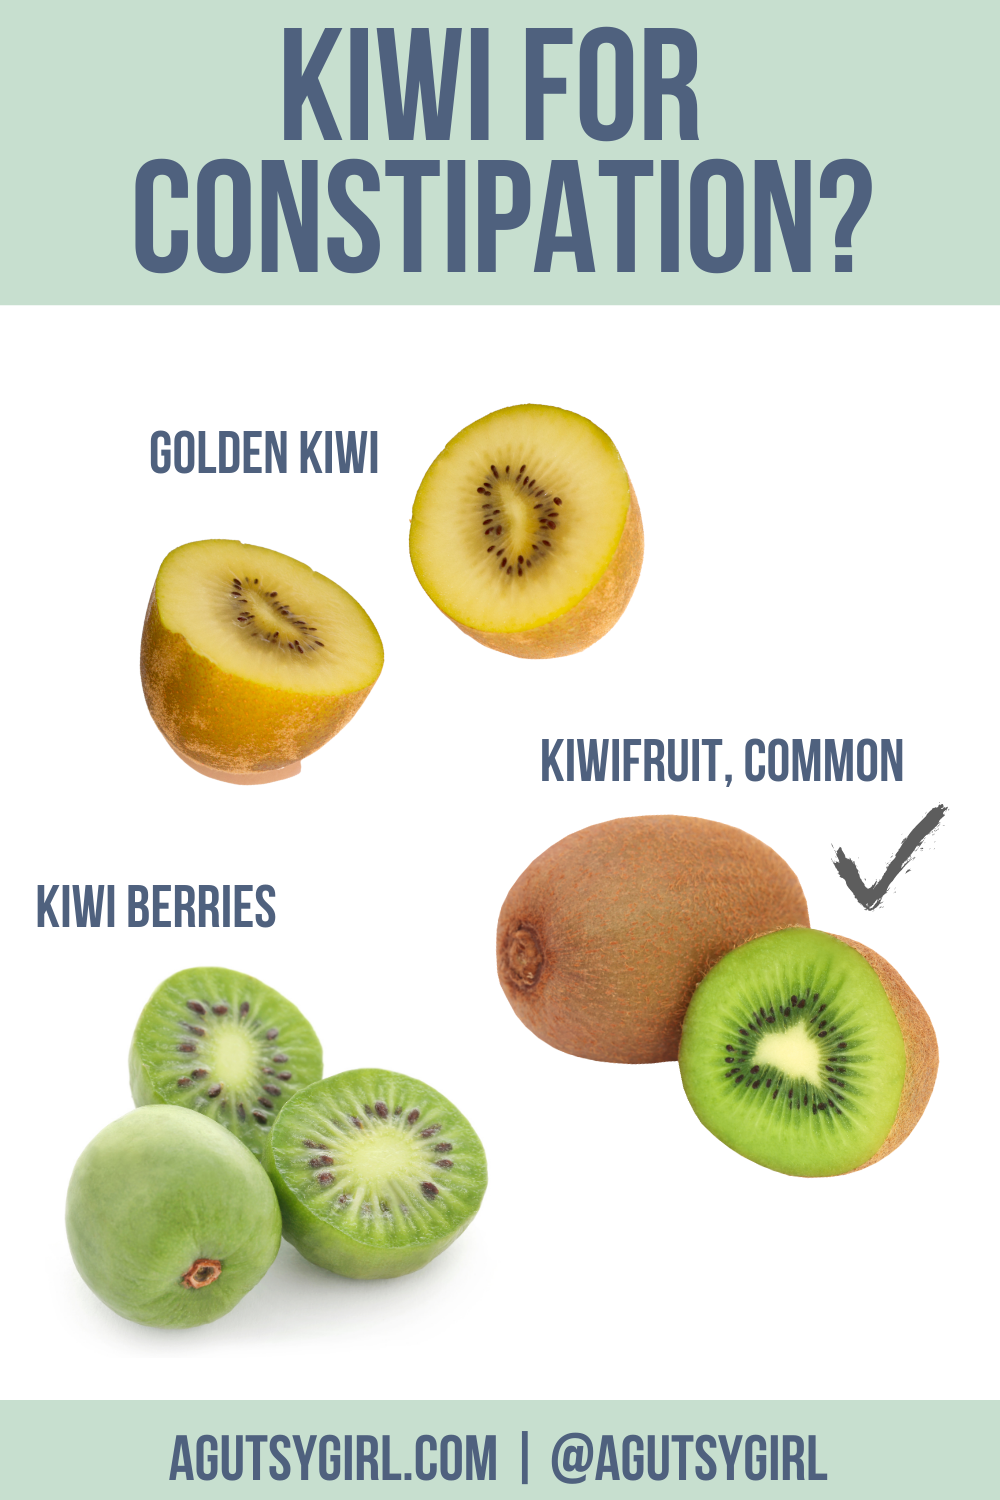 Kiwi for Constipation agutsygirl.com #kiwifruit #constipation #guthealth